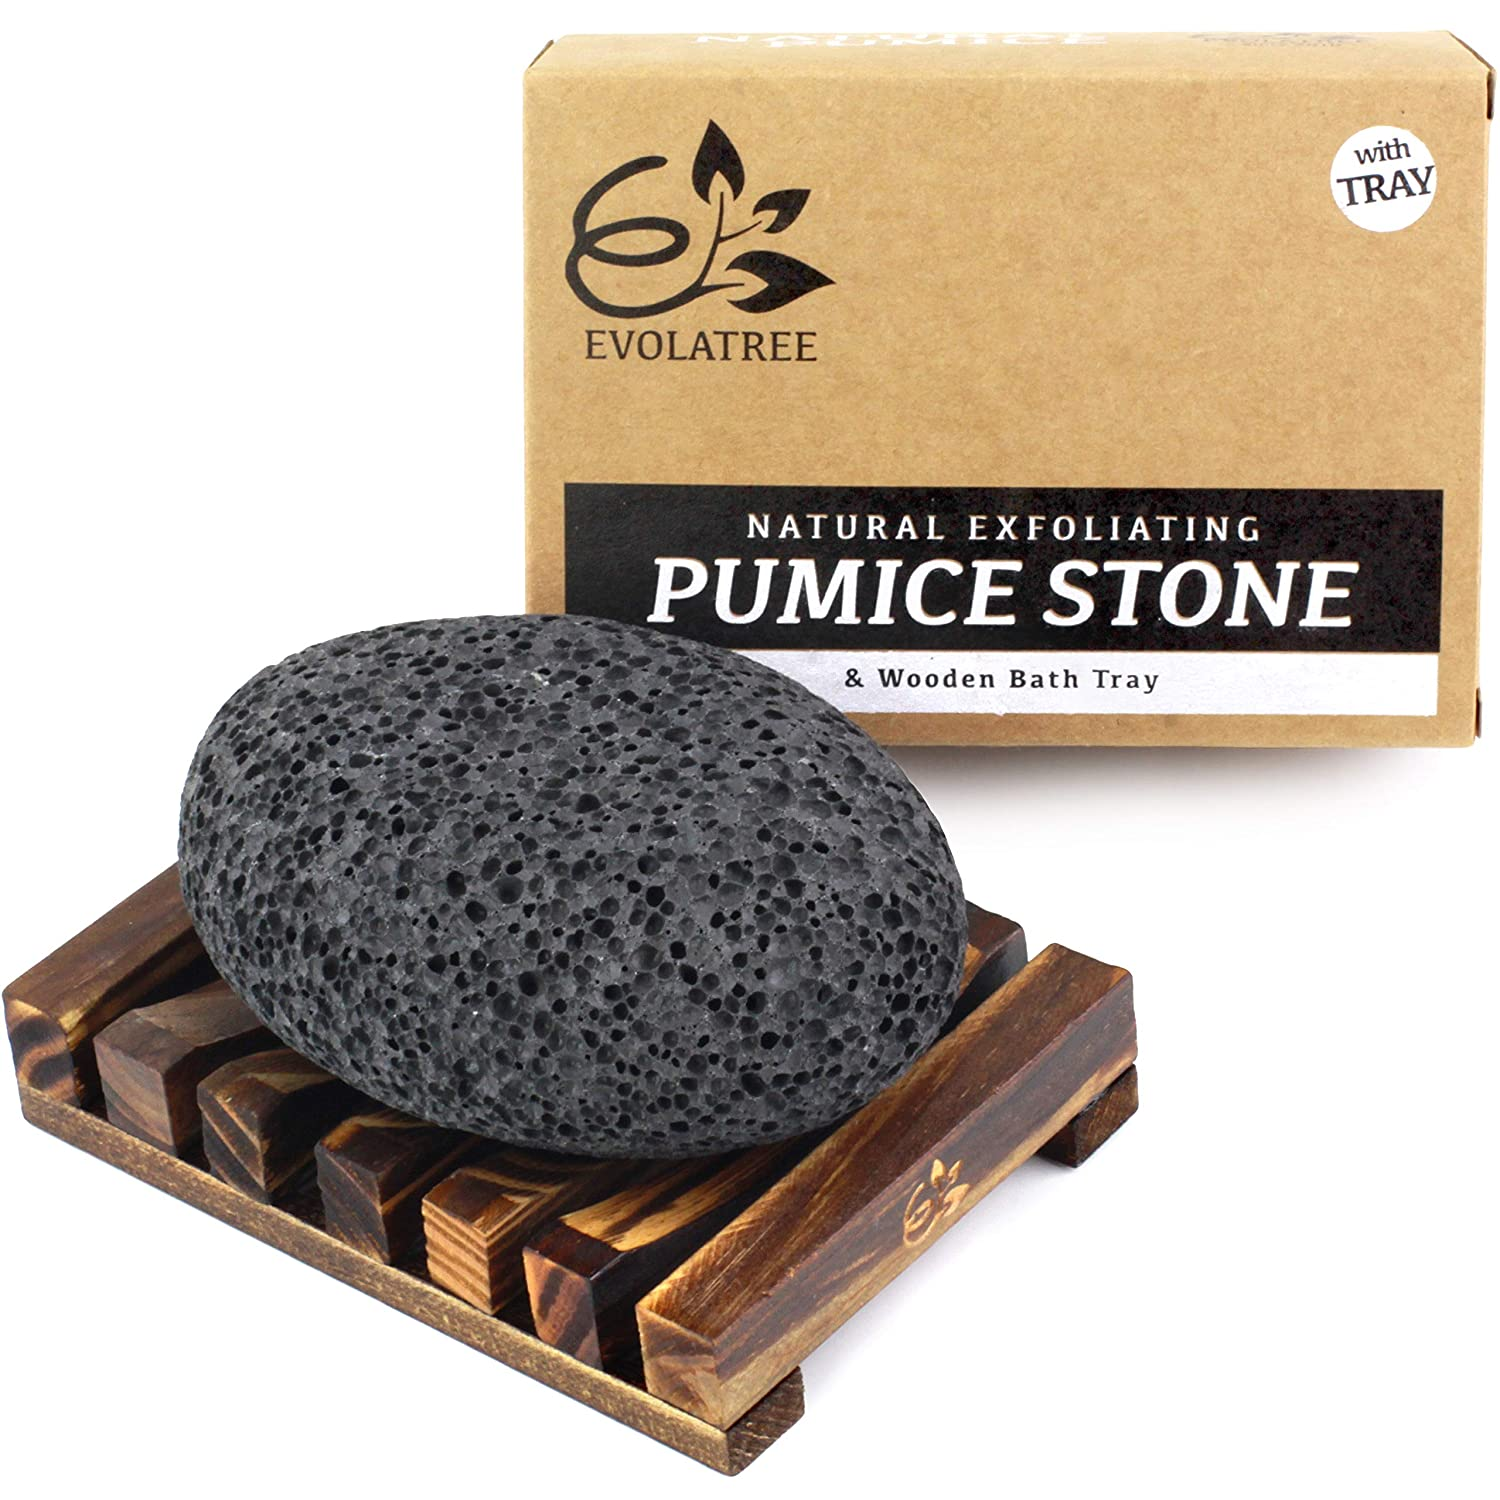 Evolatree Pumice Stone for Feet - Foot Pumice for Exfoliating Hard Skin - Natural Foot Stone Removes Callus on Hands, Heels, and Body - Foot Care Pedicure Gift Set w/BONUS Wooden Bath Tray: Beauty